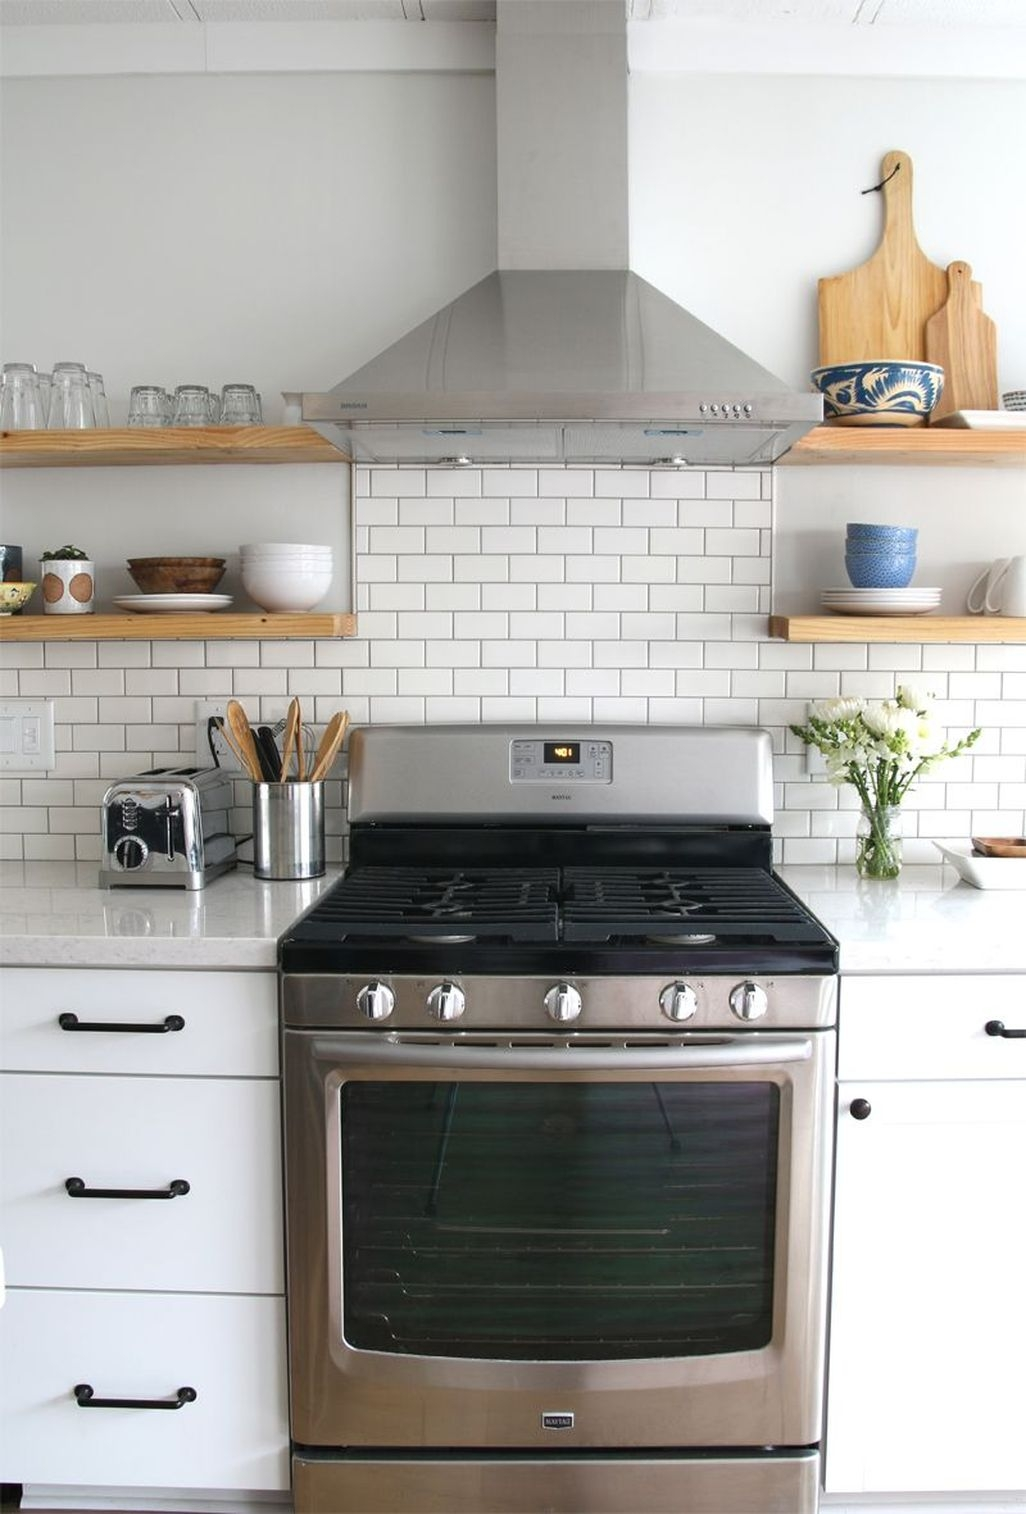 Awesome White Kitchen Backsplash Design Ideas 37